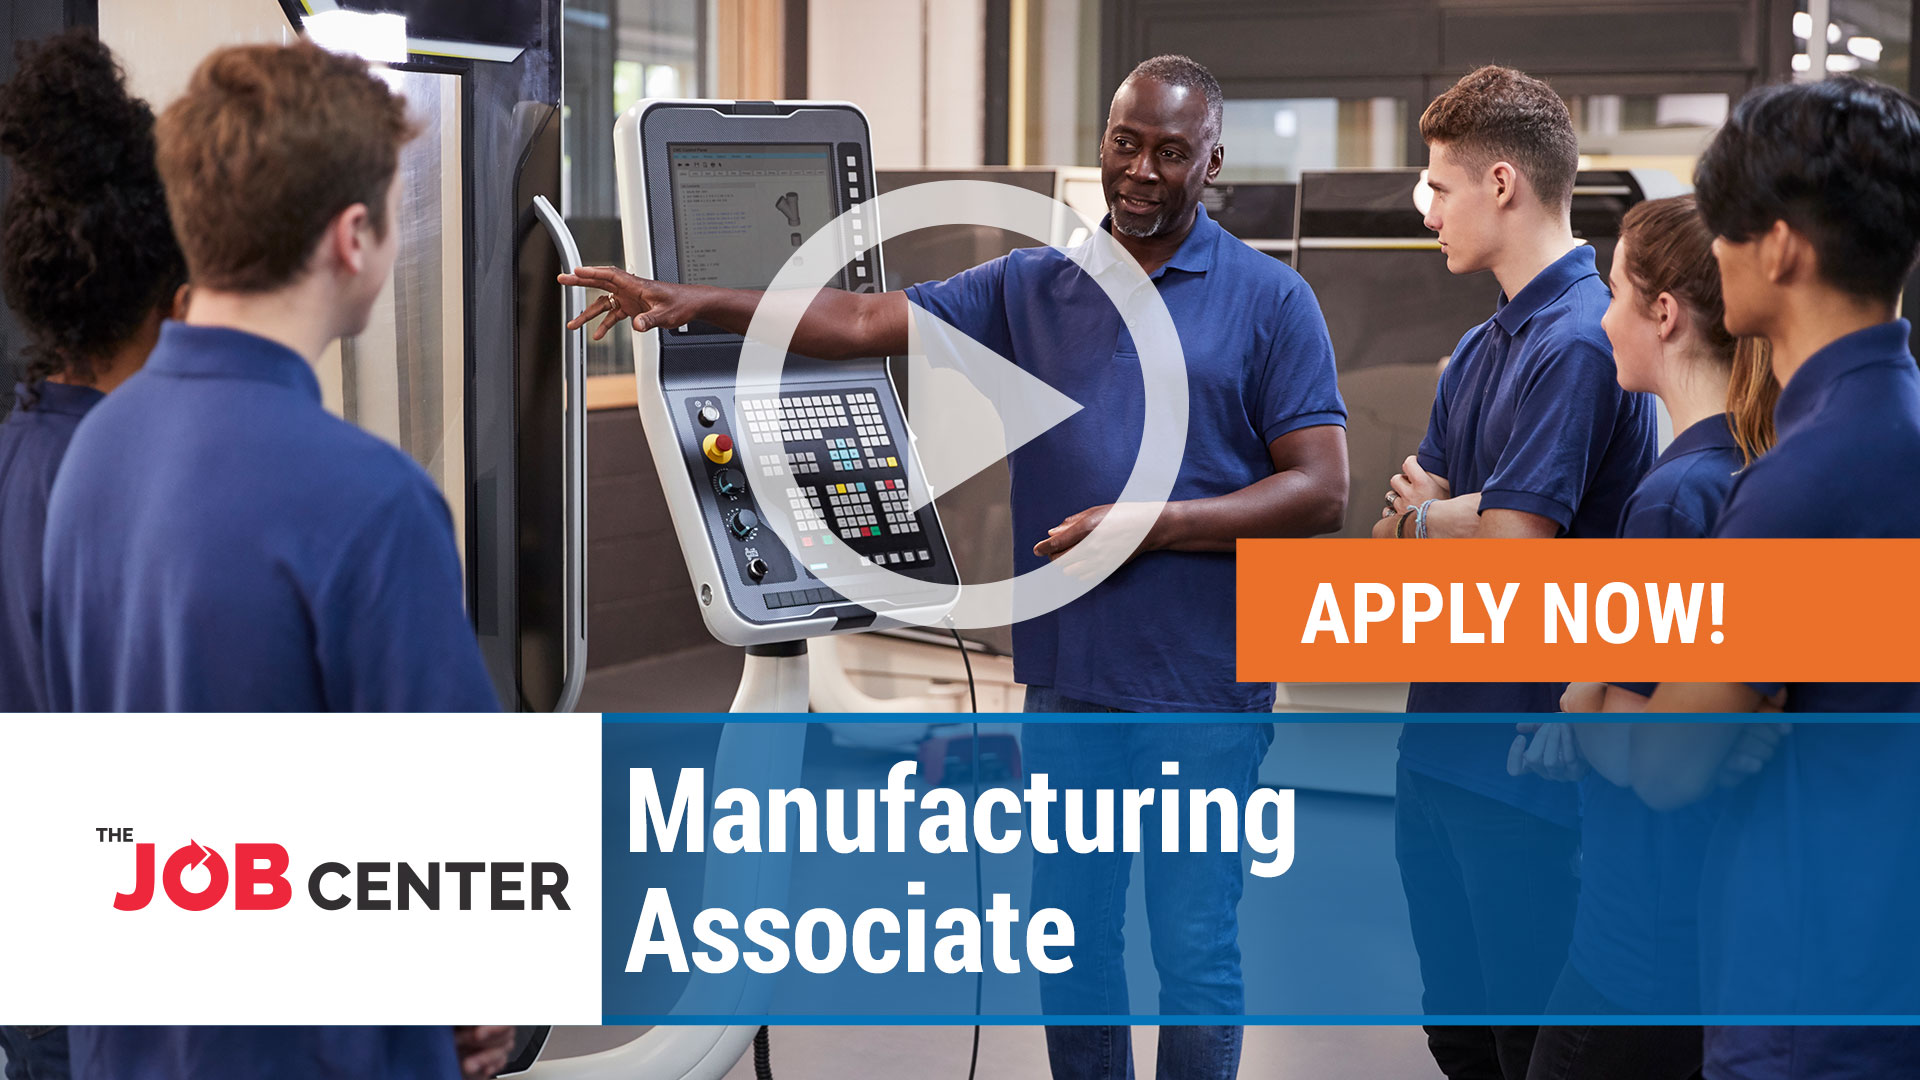 Watch our careers video for available job opening Manufacturing Associate in Multiple, Ohio/ Kentucky/ Indiana/ New Hampshire/ Texas